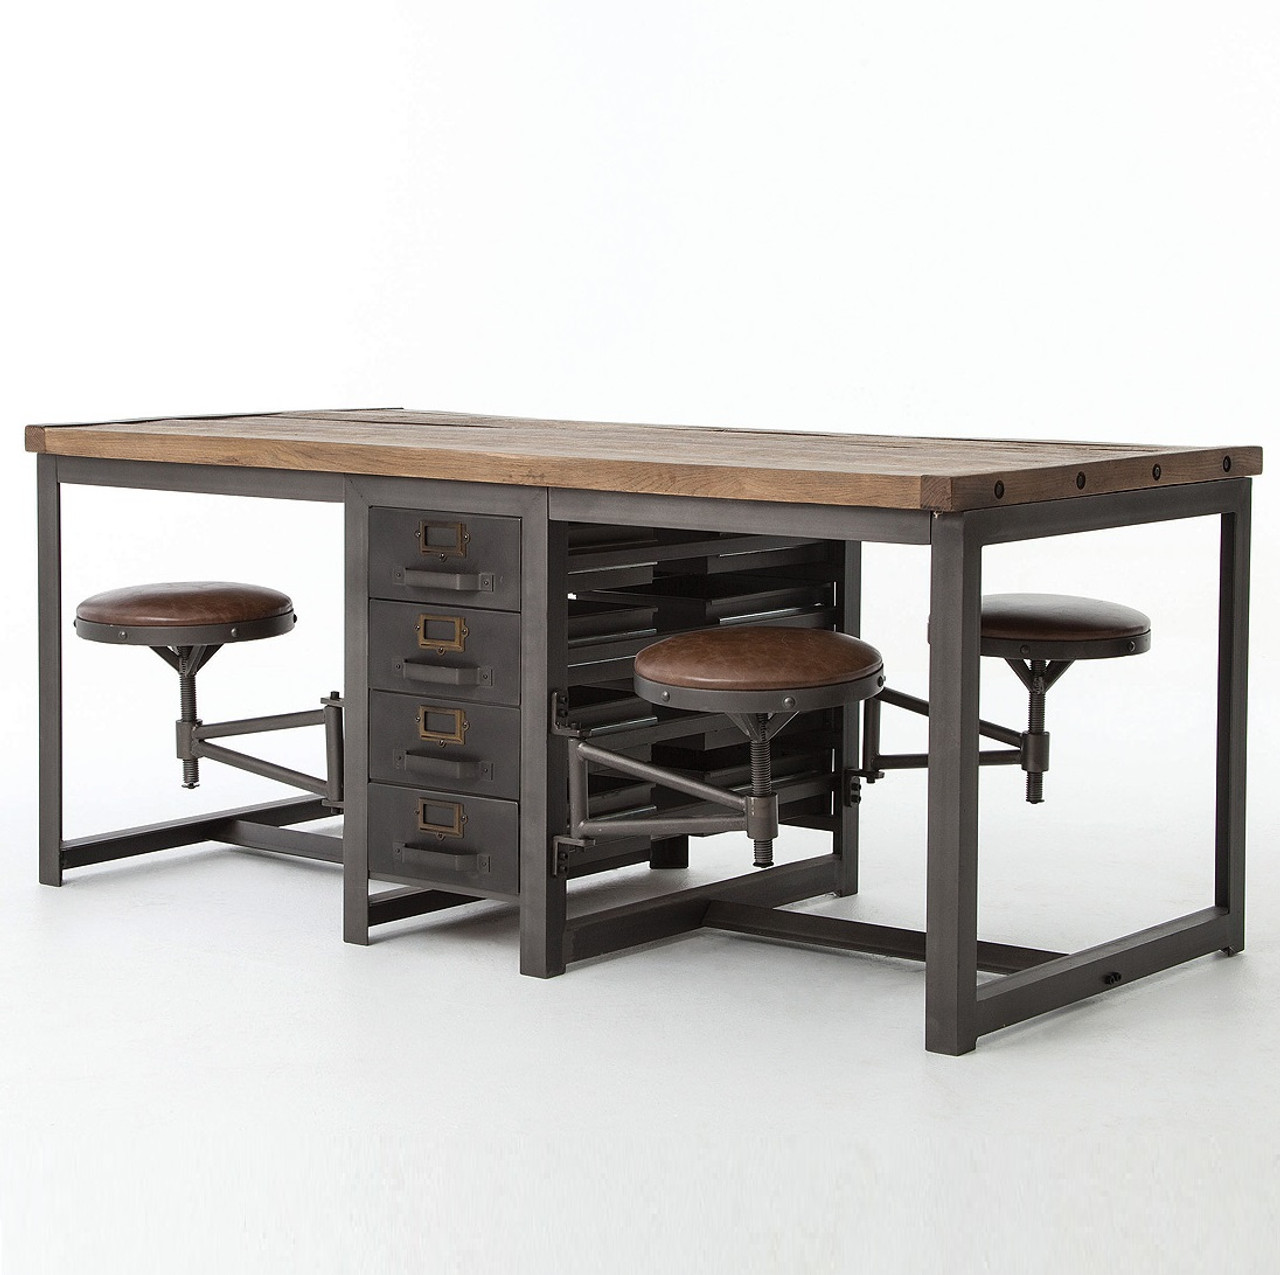 Industrial Work Table 25x40 Rupert Industrial Architect Work Table Desk With Attached